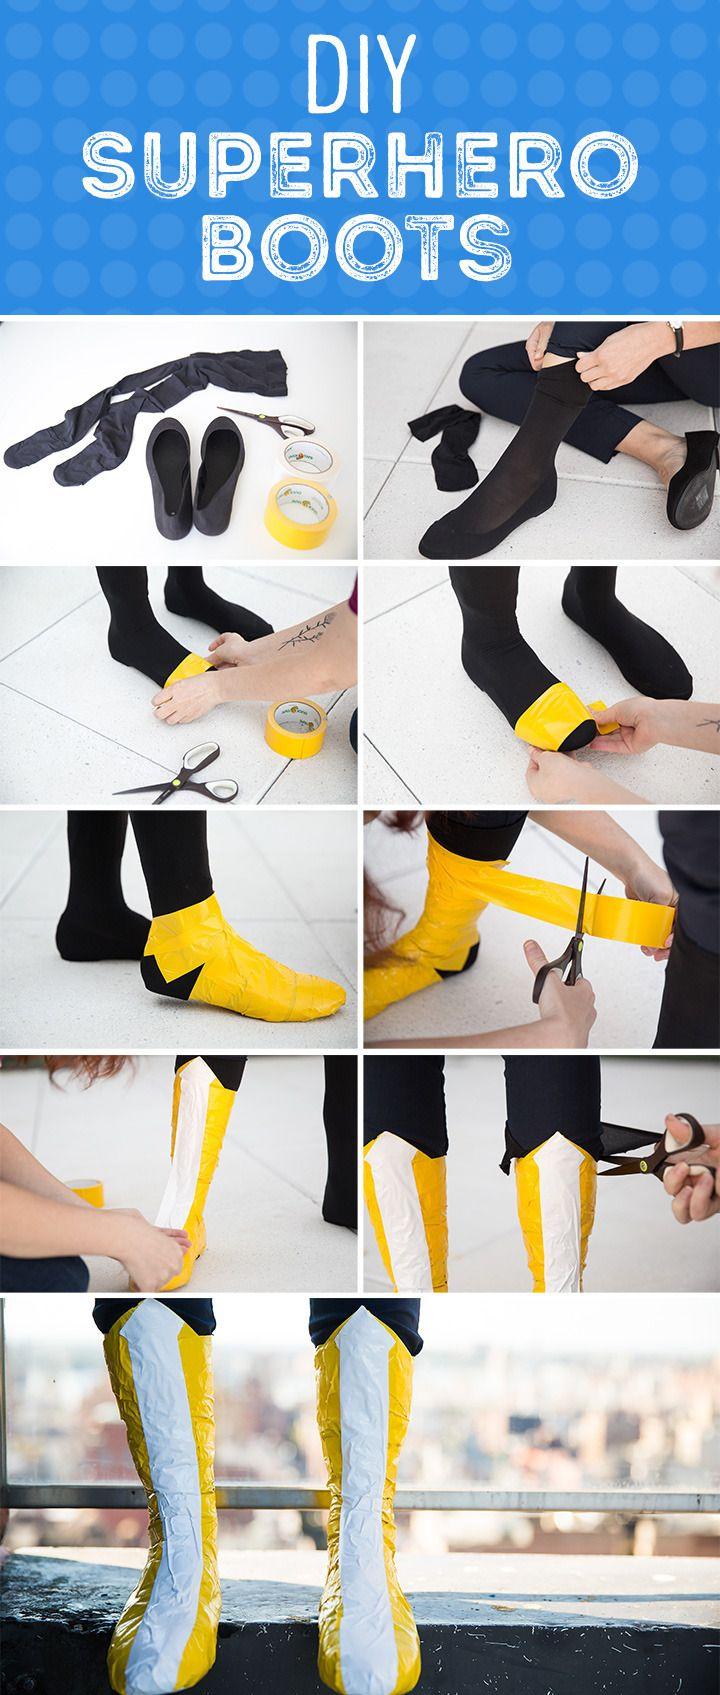 Transform yourself into a superhero for Halloween, starting with your feet